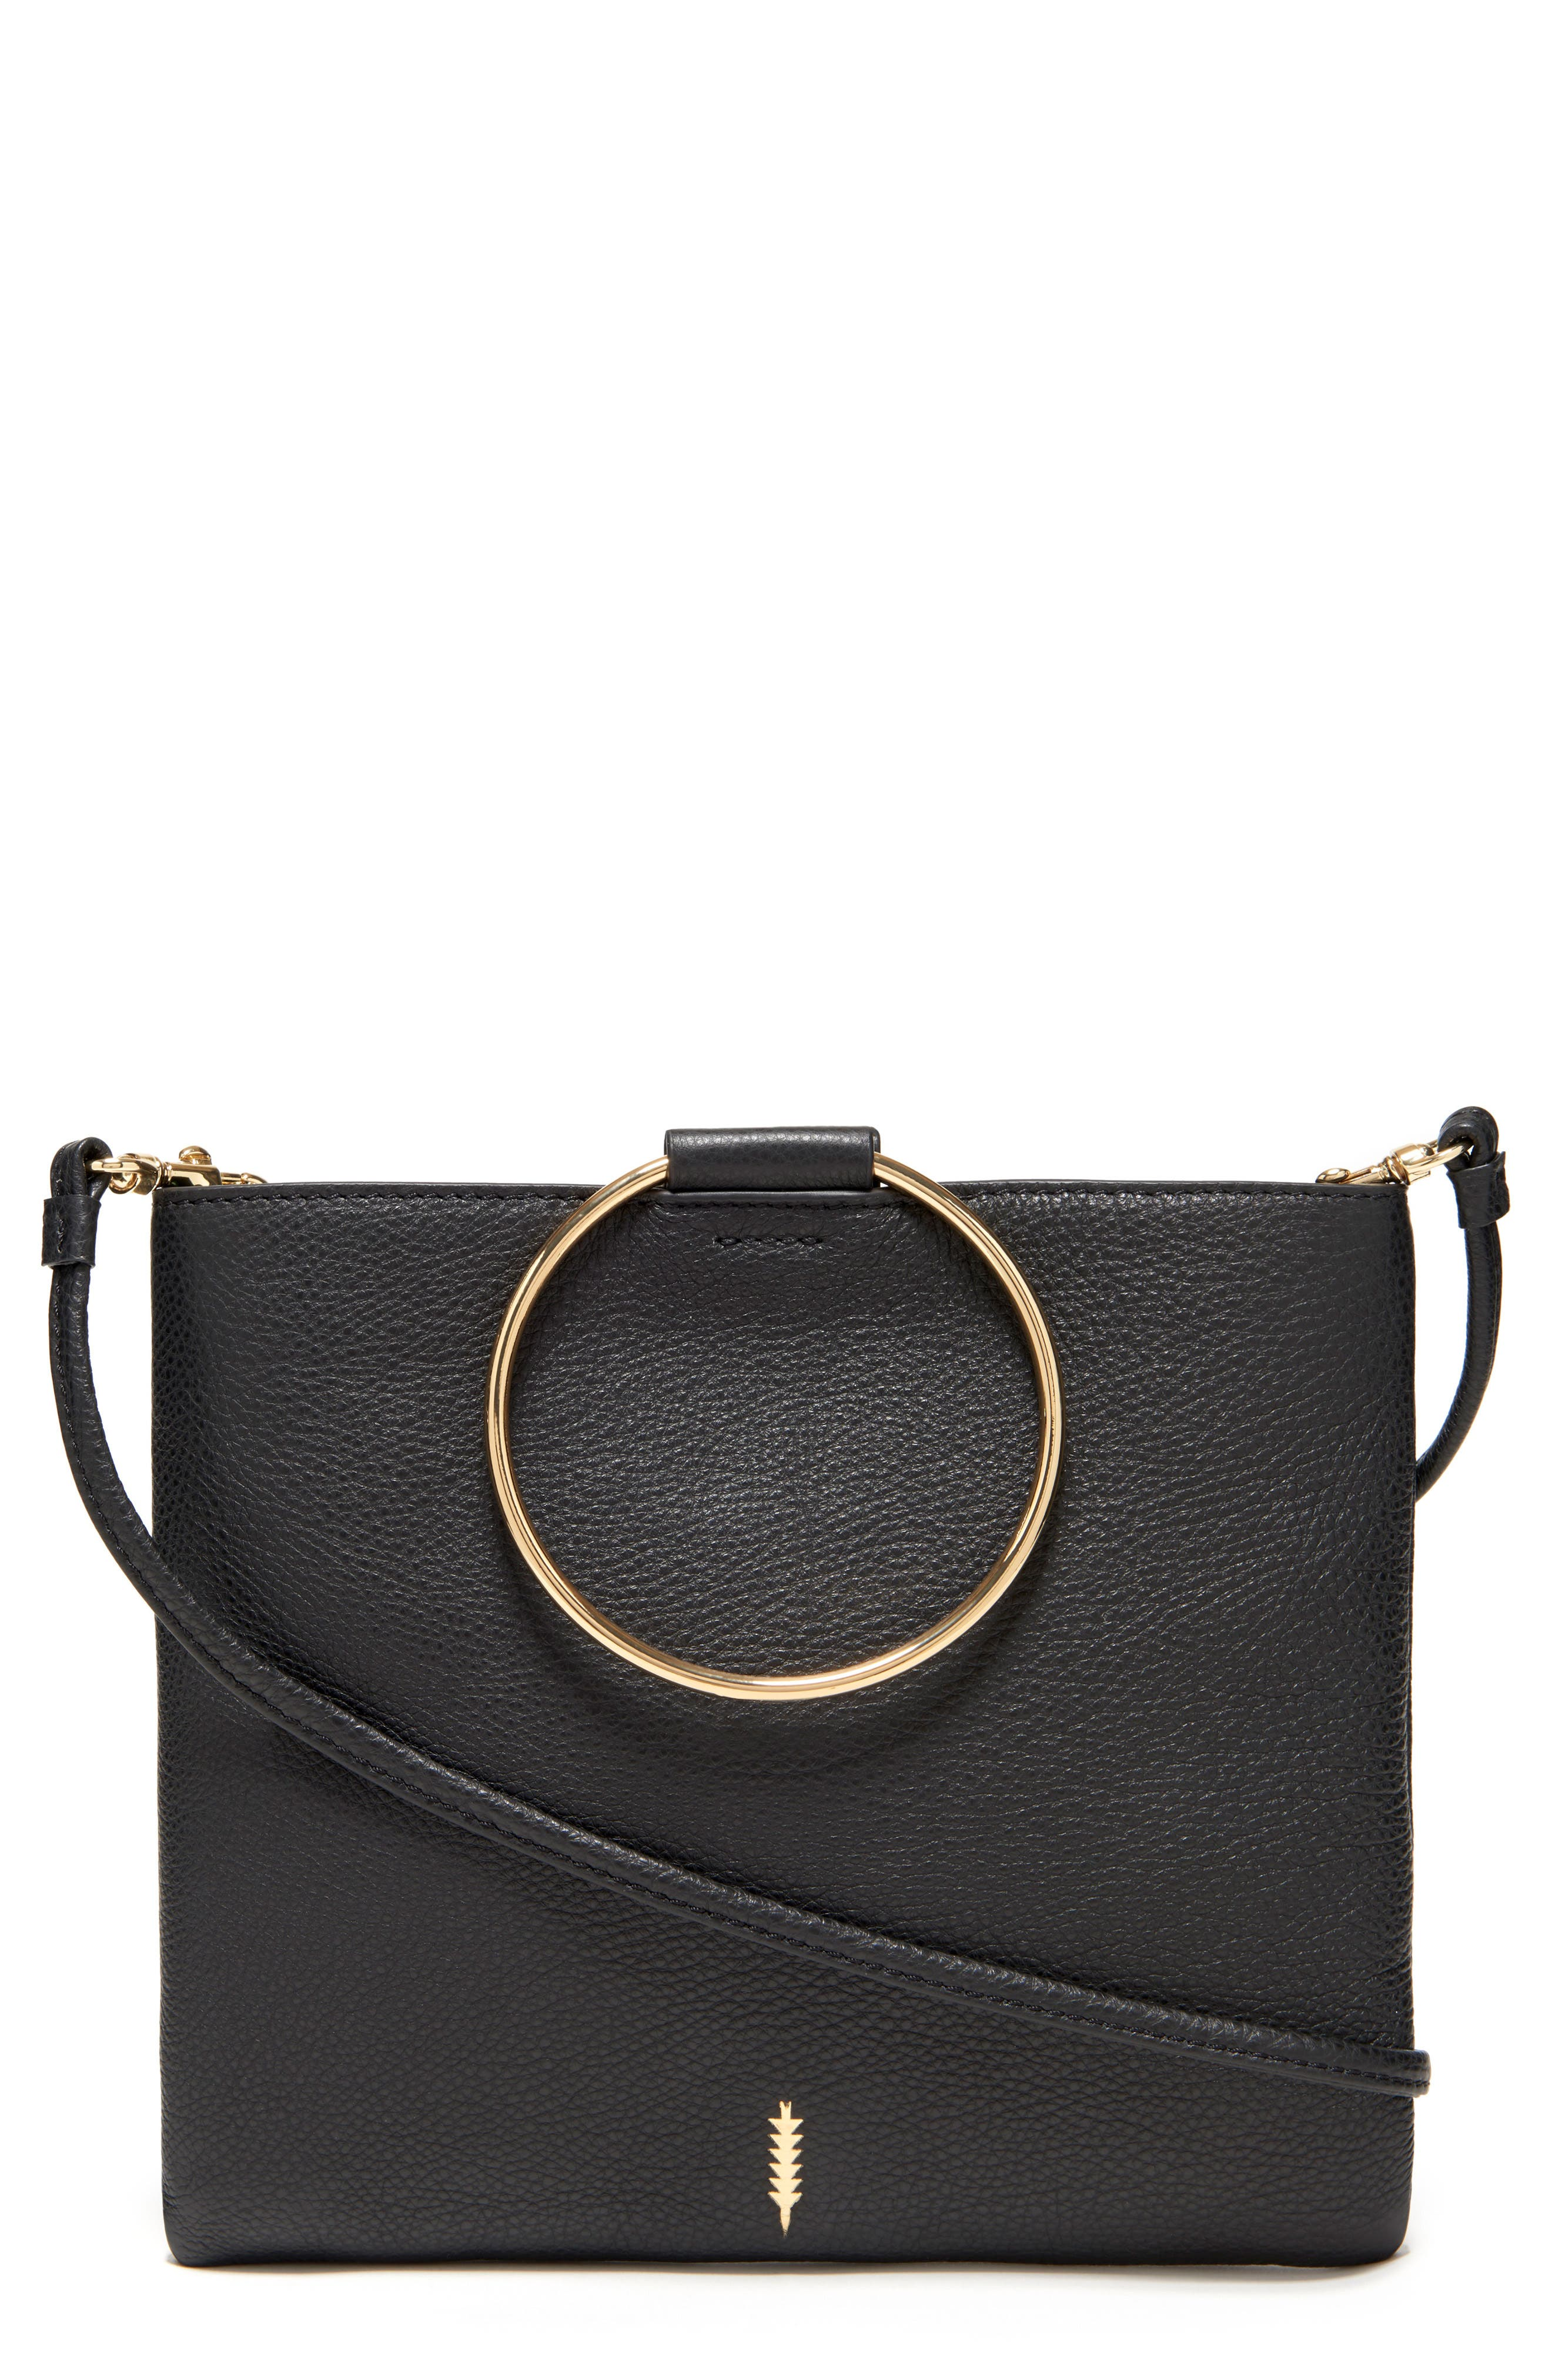 THACKER,                             Le Pouch Leather Ring Handle Crossbody Bag,                             Main thumbnail 1, color,                             001